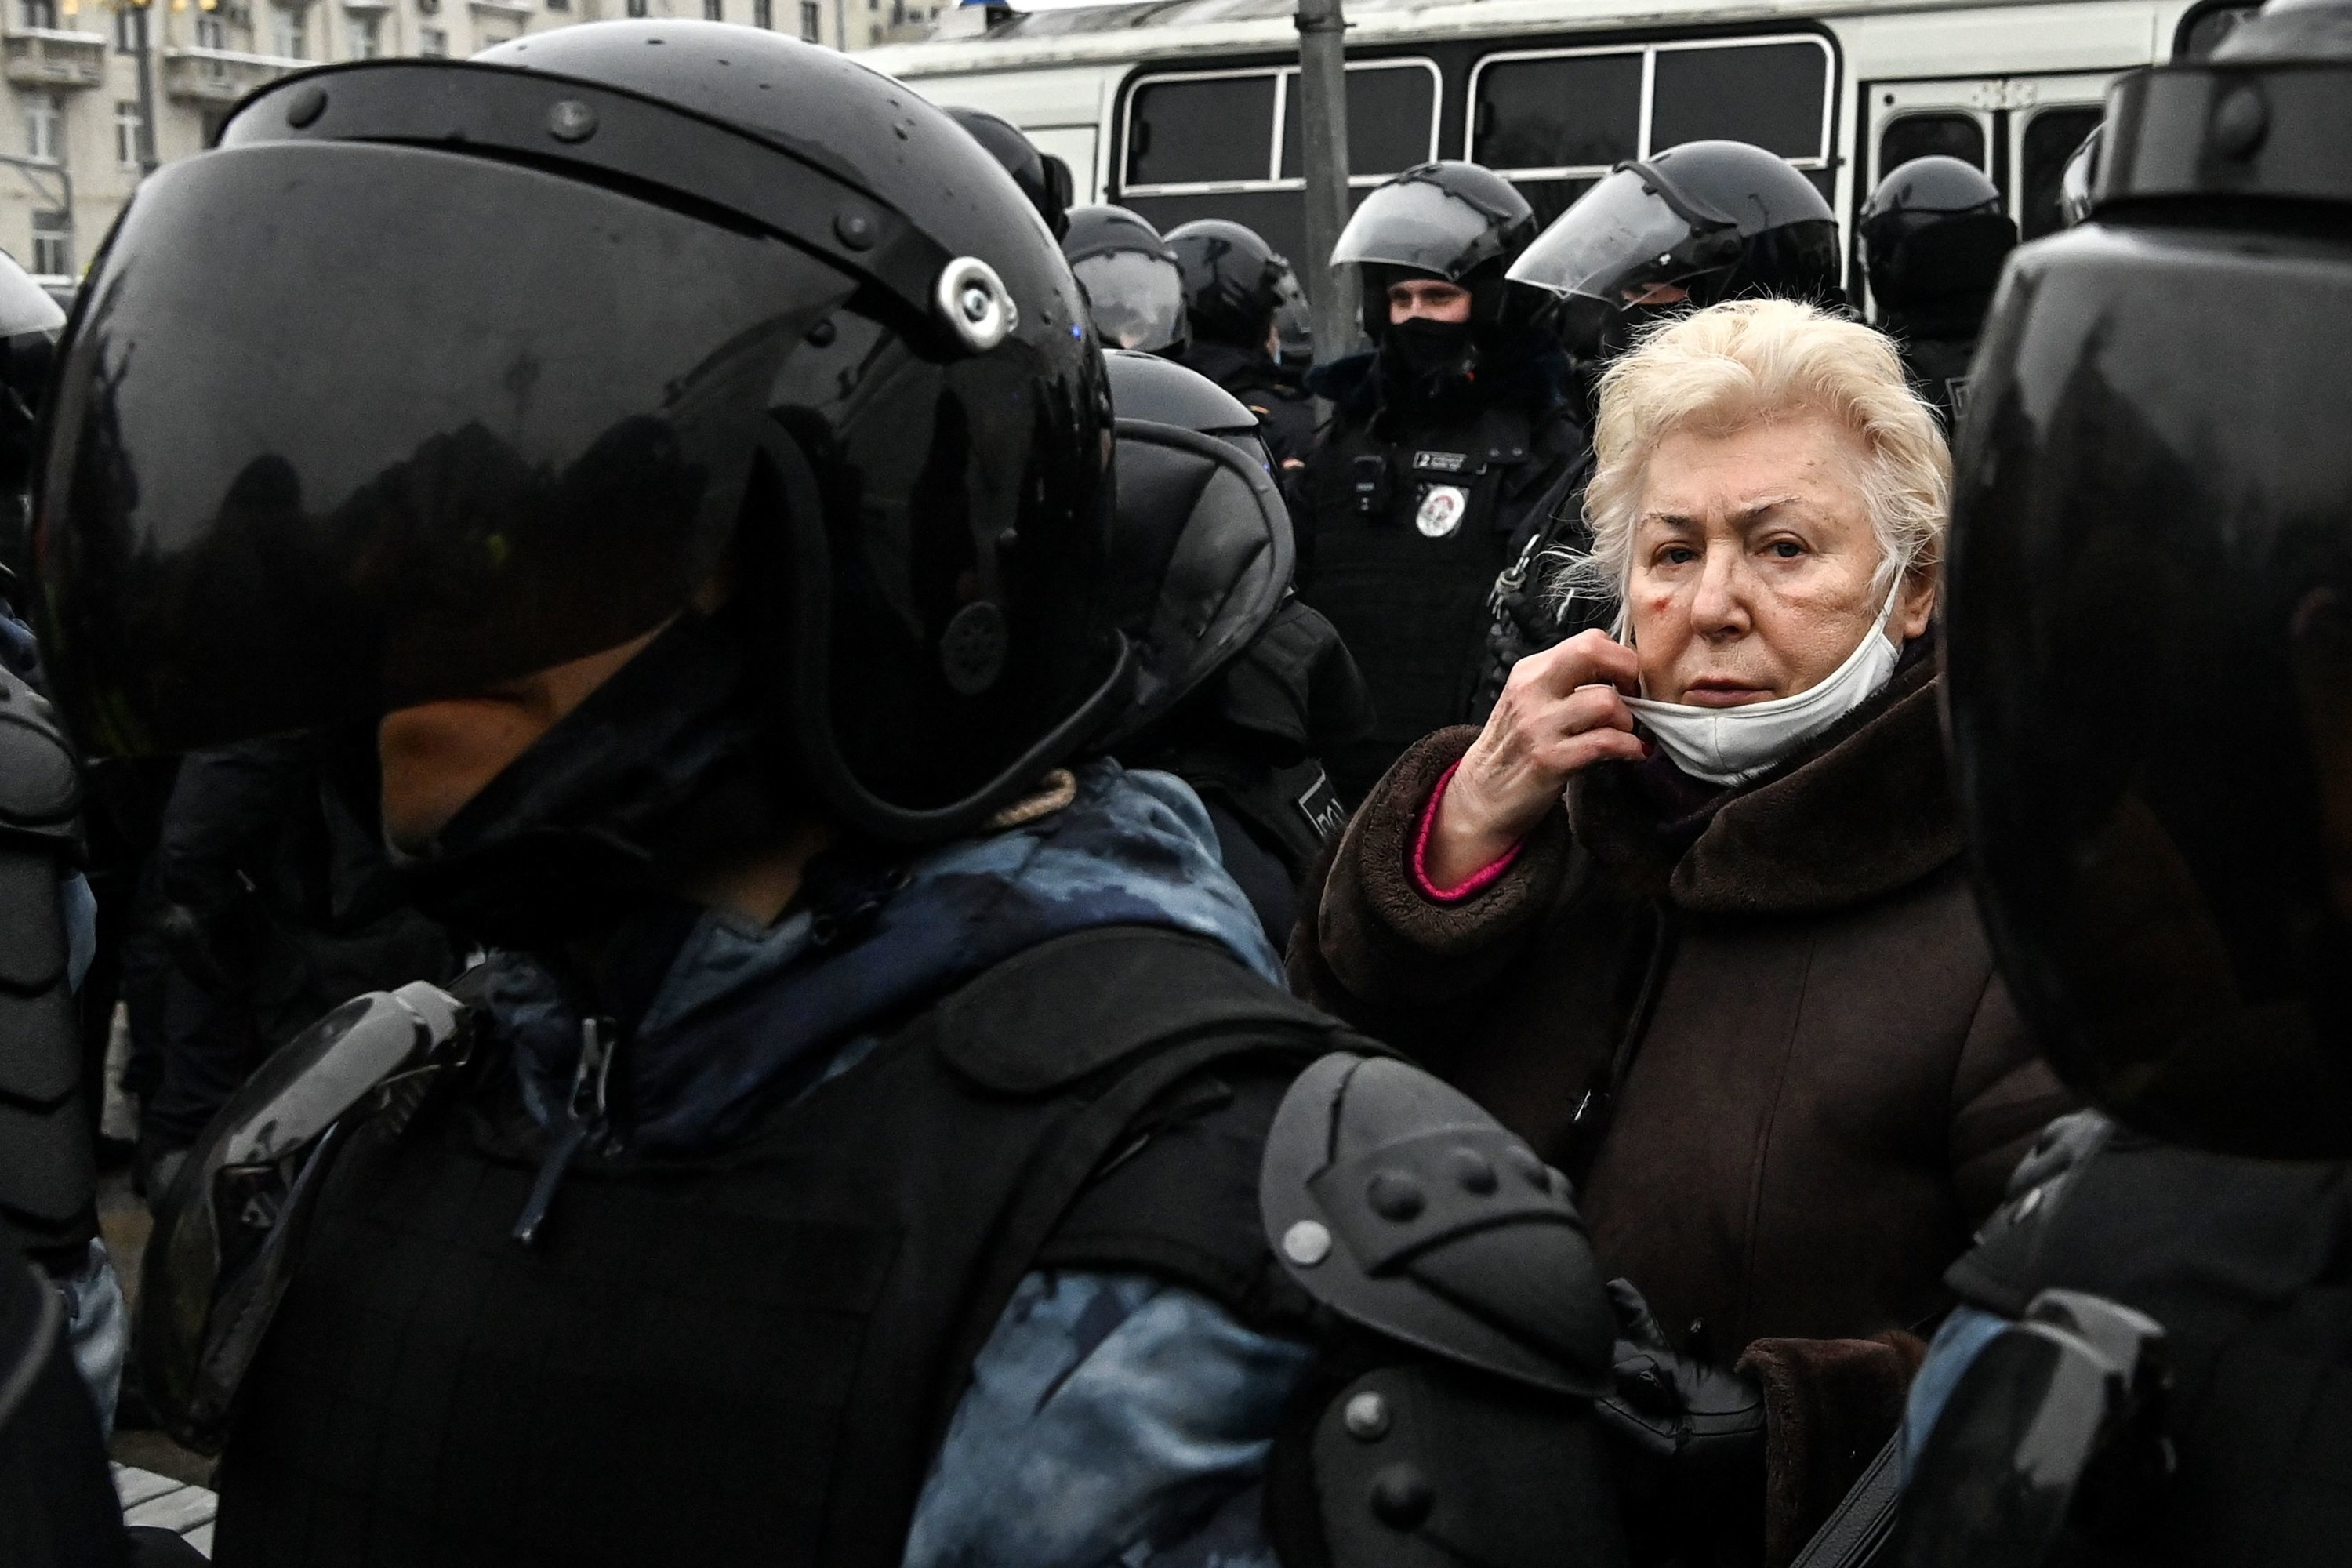 An elderly woman surrounded by police officers at a pro-Democracy rally in Russia